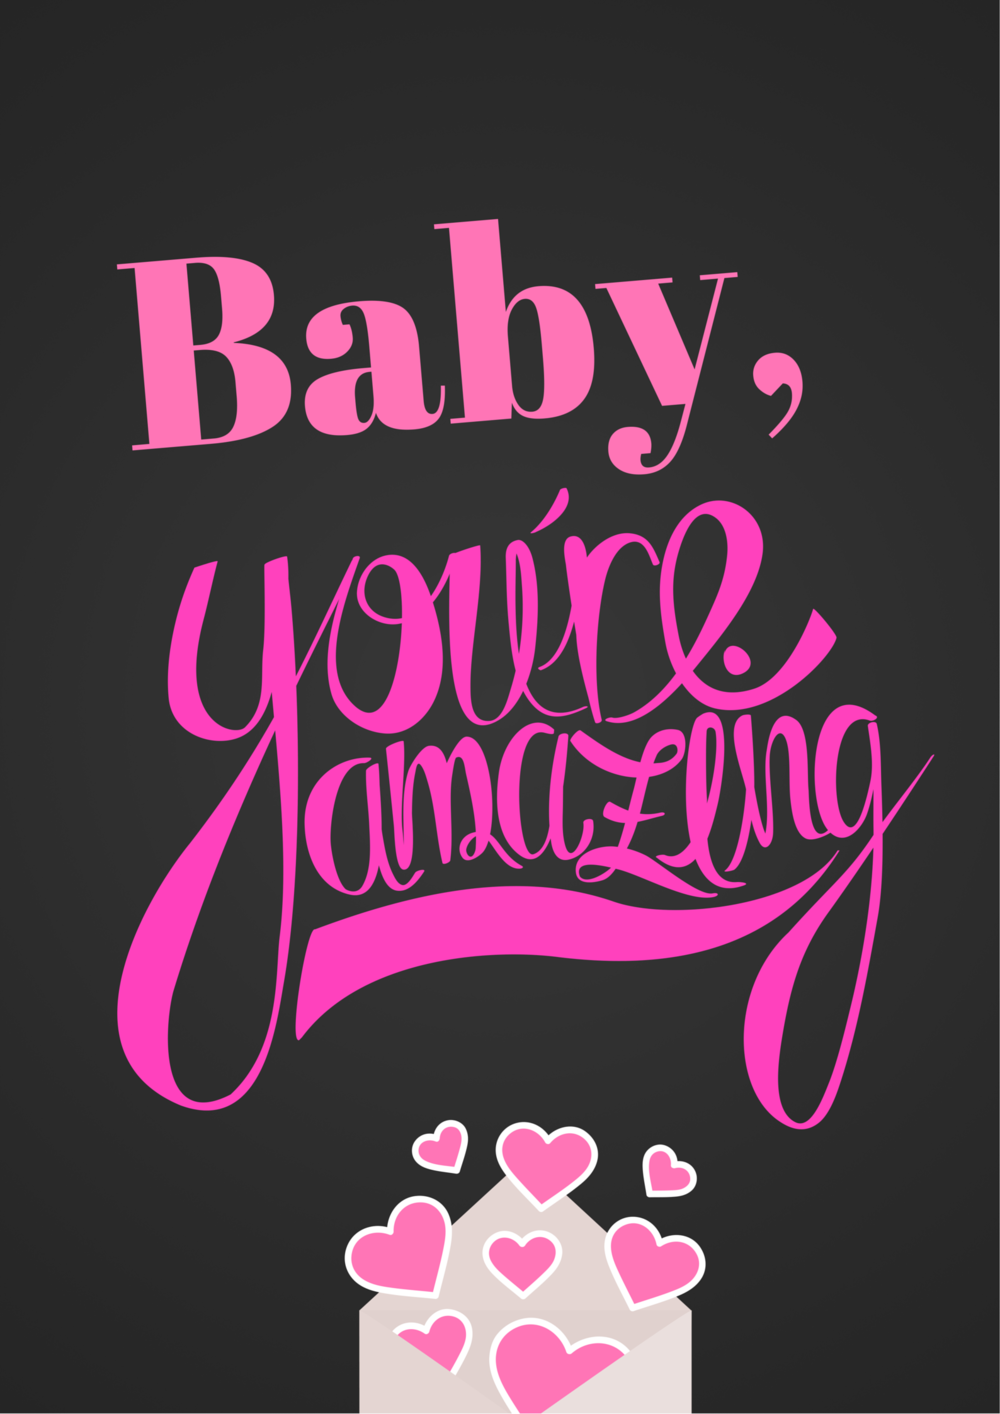 Baby you're amazing wall art or printable Sign, or image to use in social media